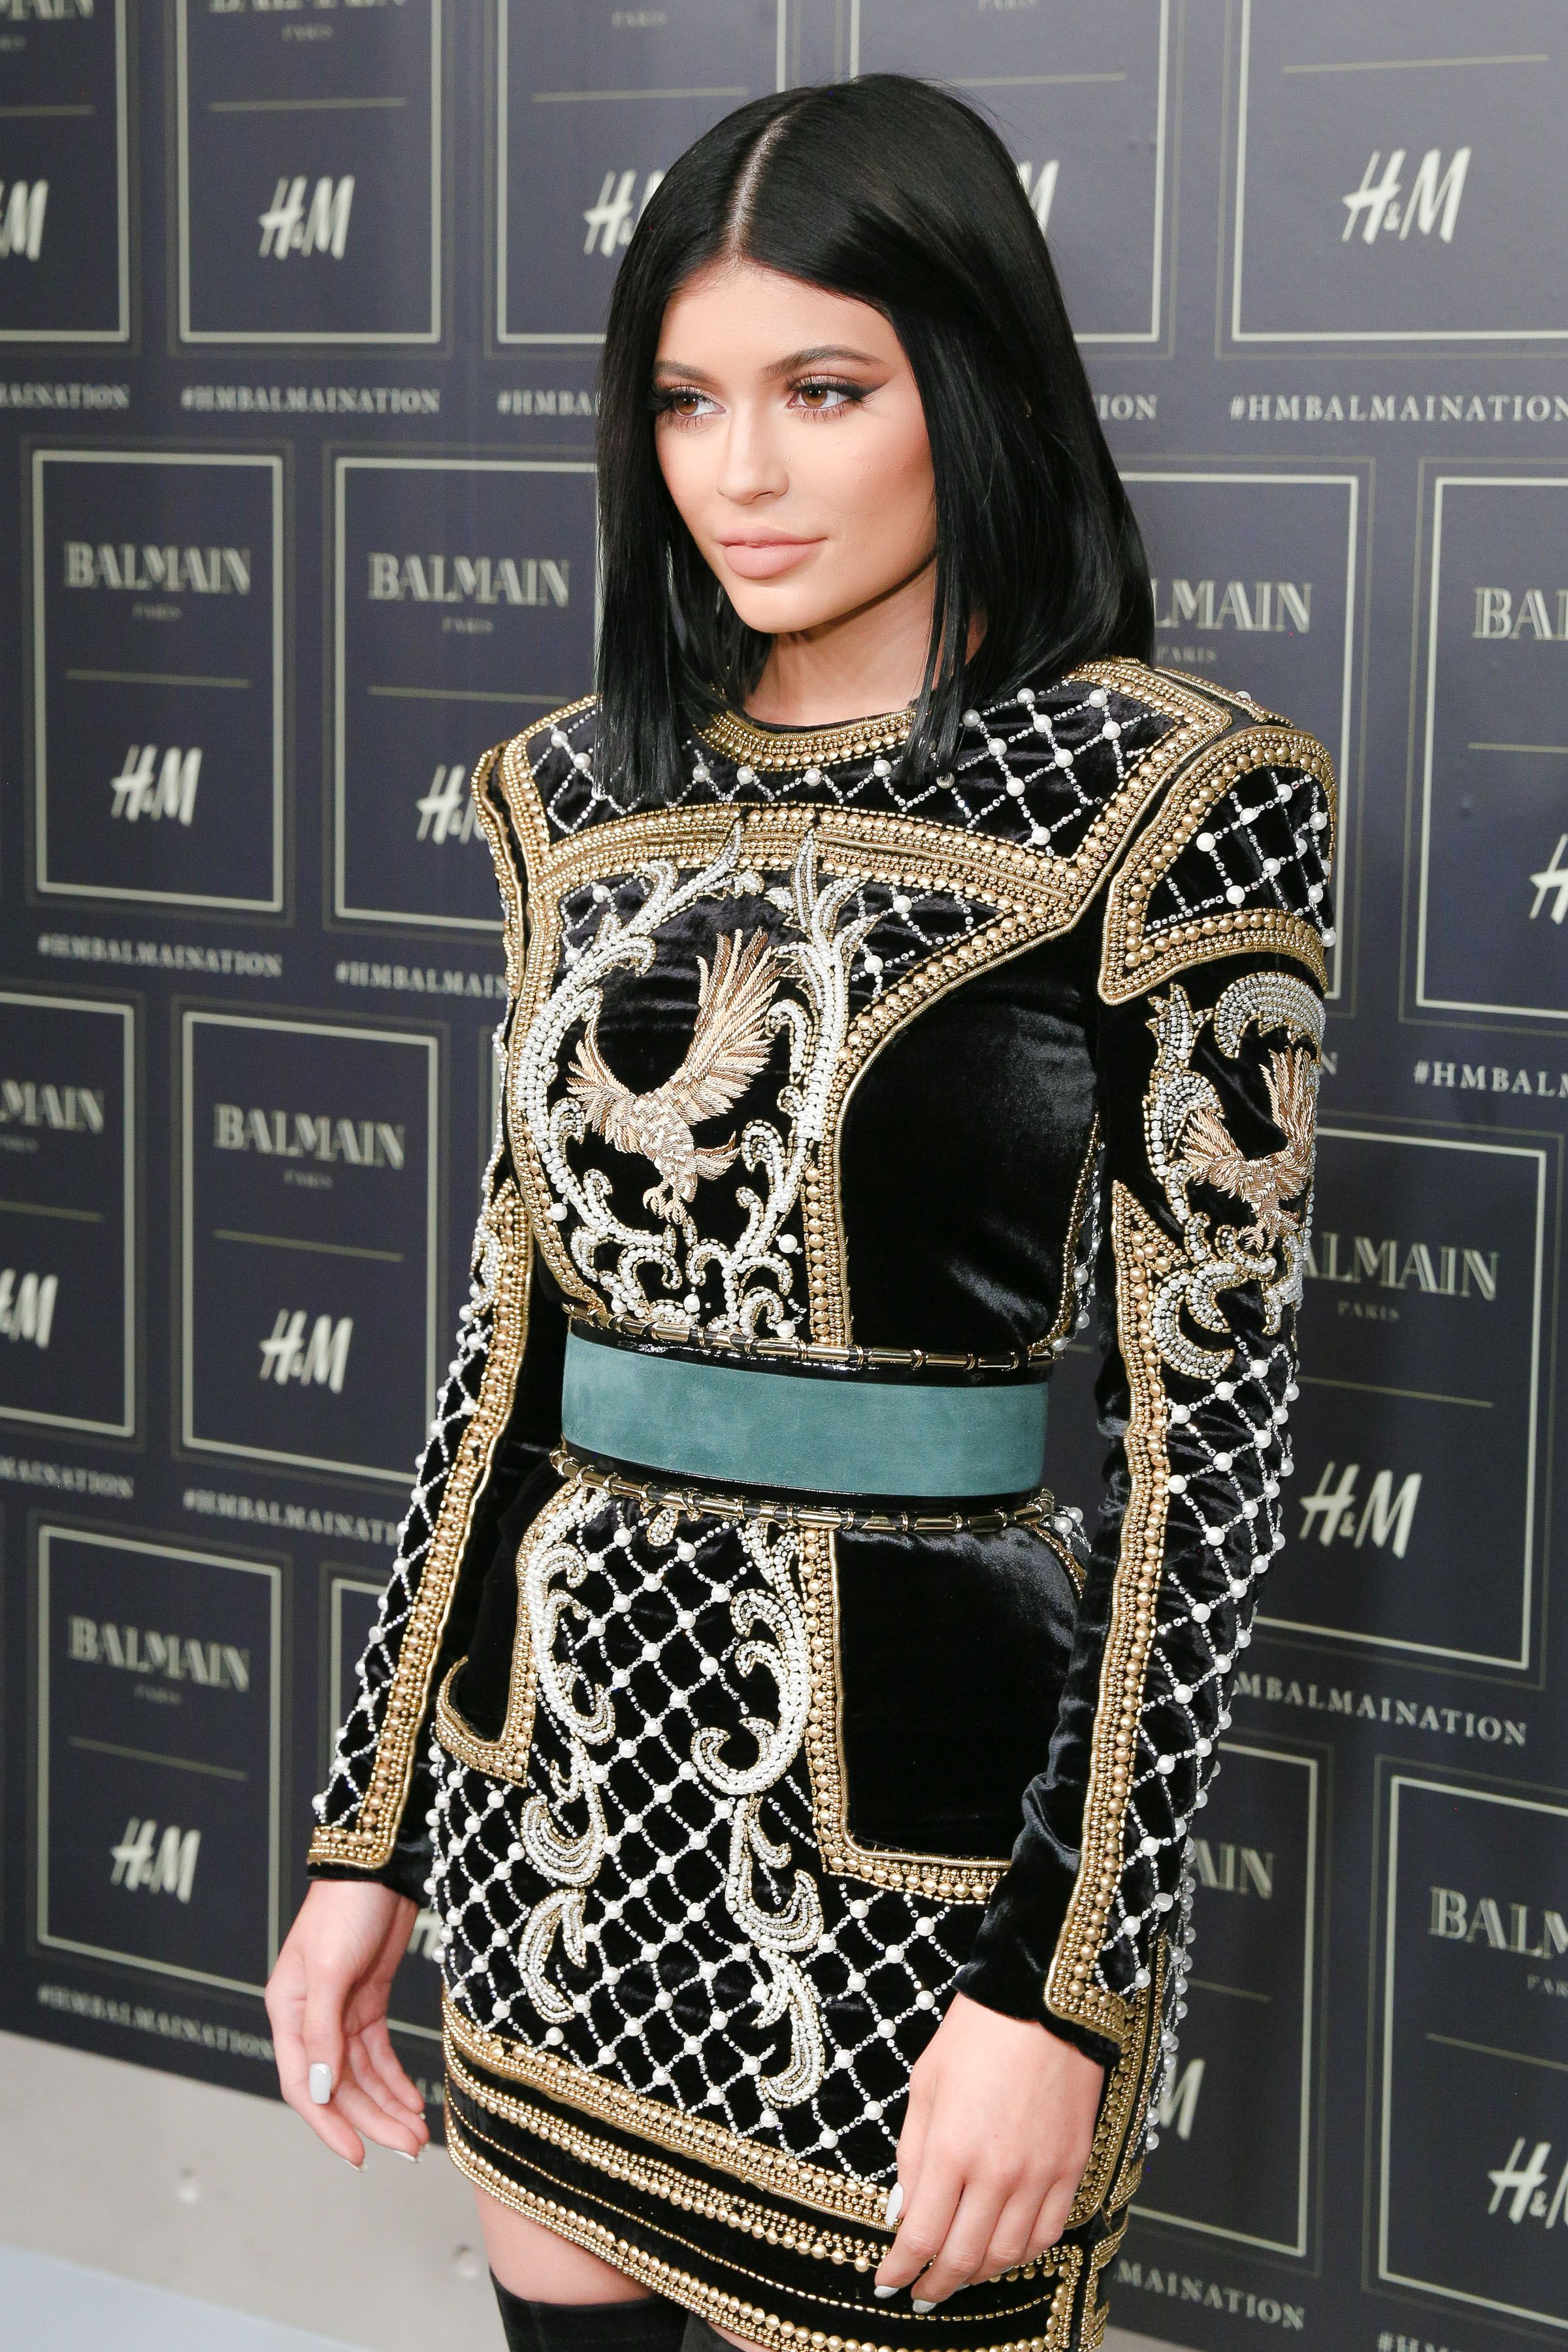 ea50f364 Kylie Jenner arrives on the red carpet at our Balmain x H&M show in an  embellished black mini dress from the Nov. 5th collection.